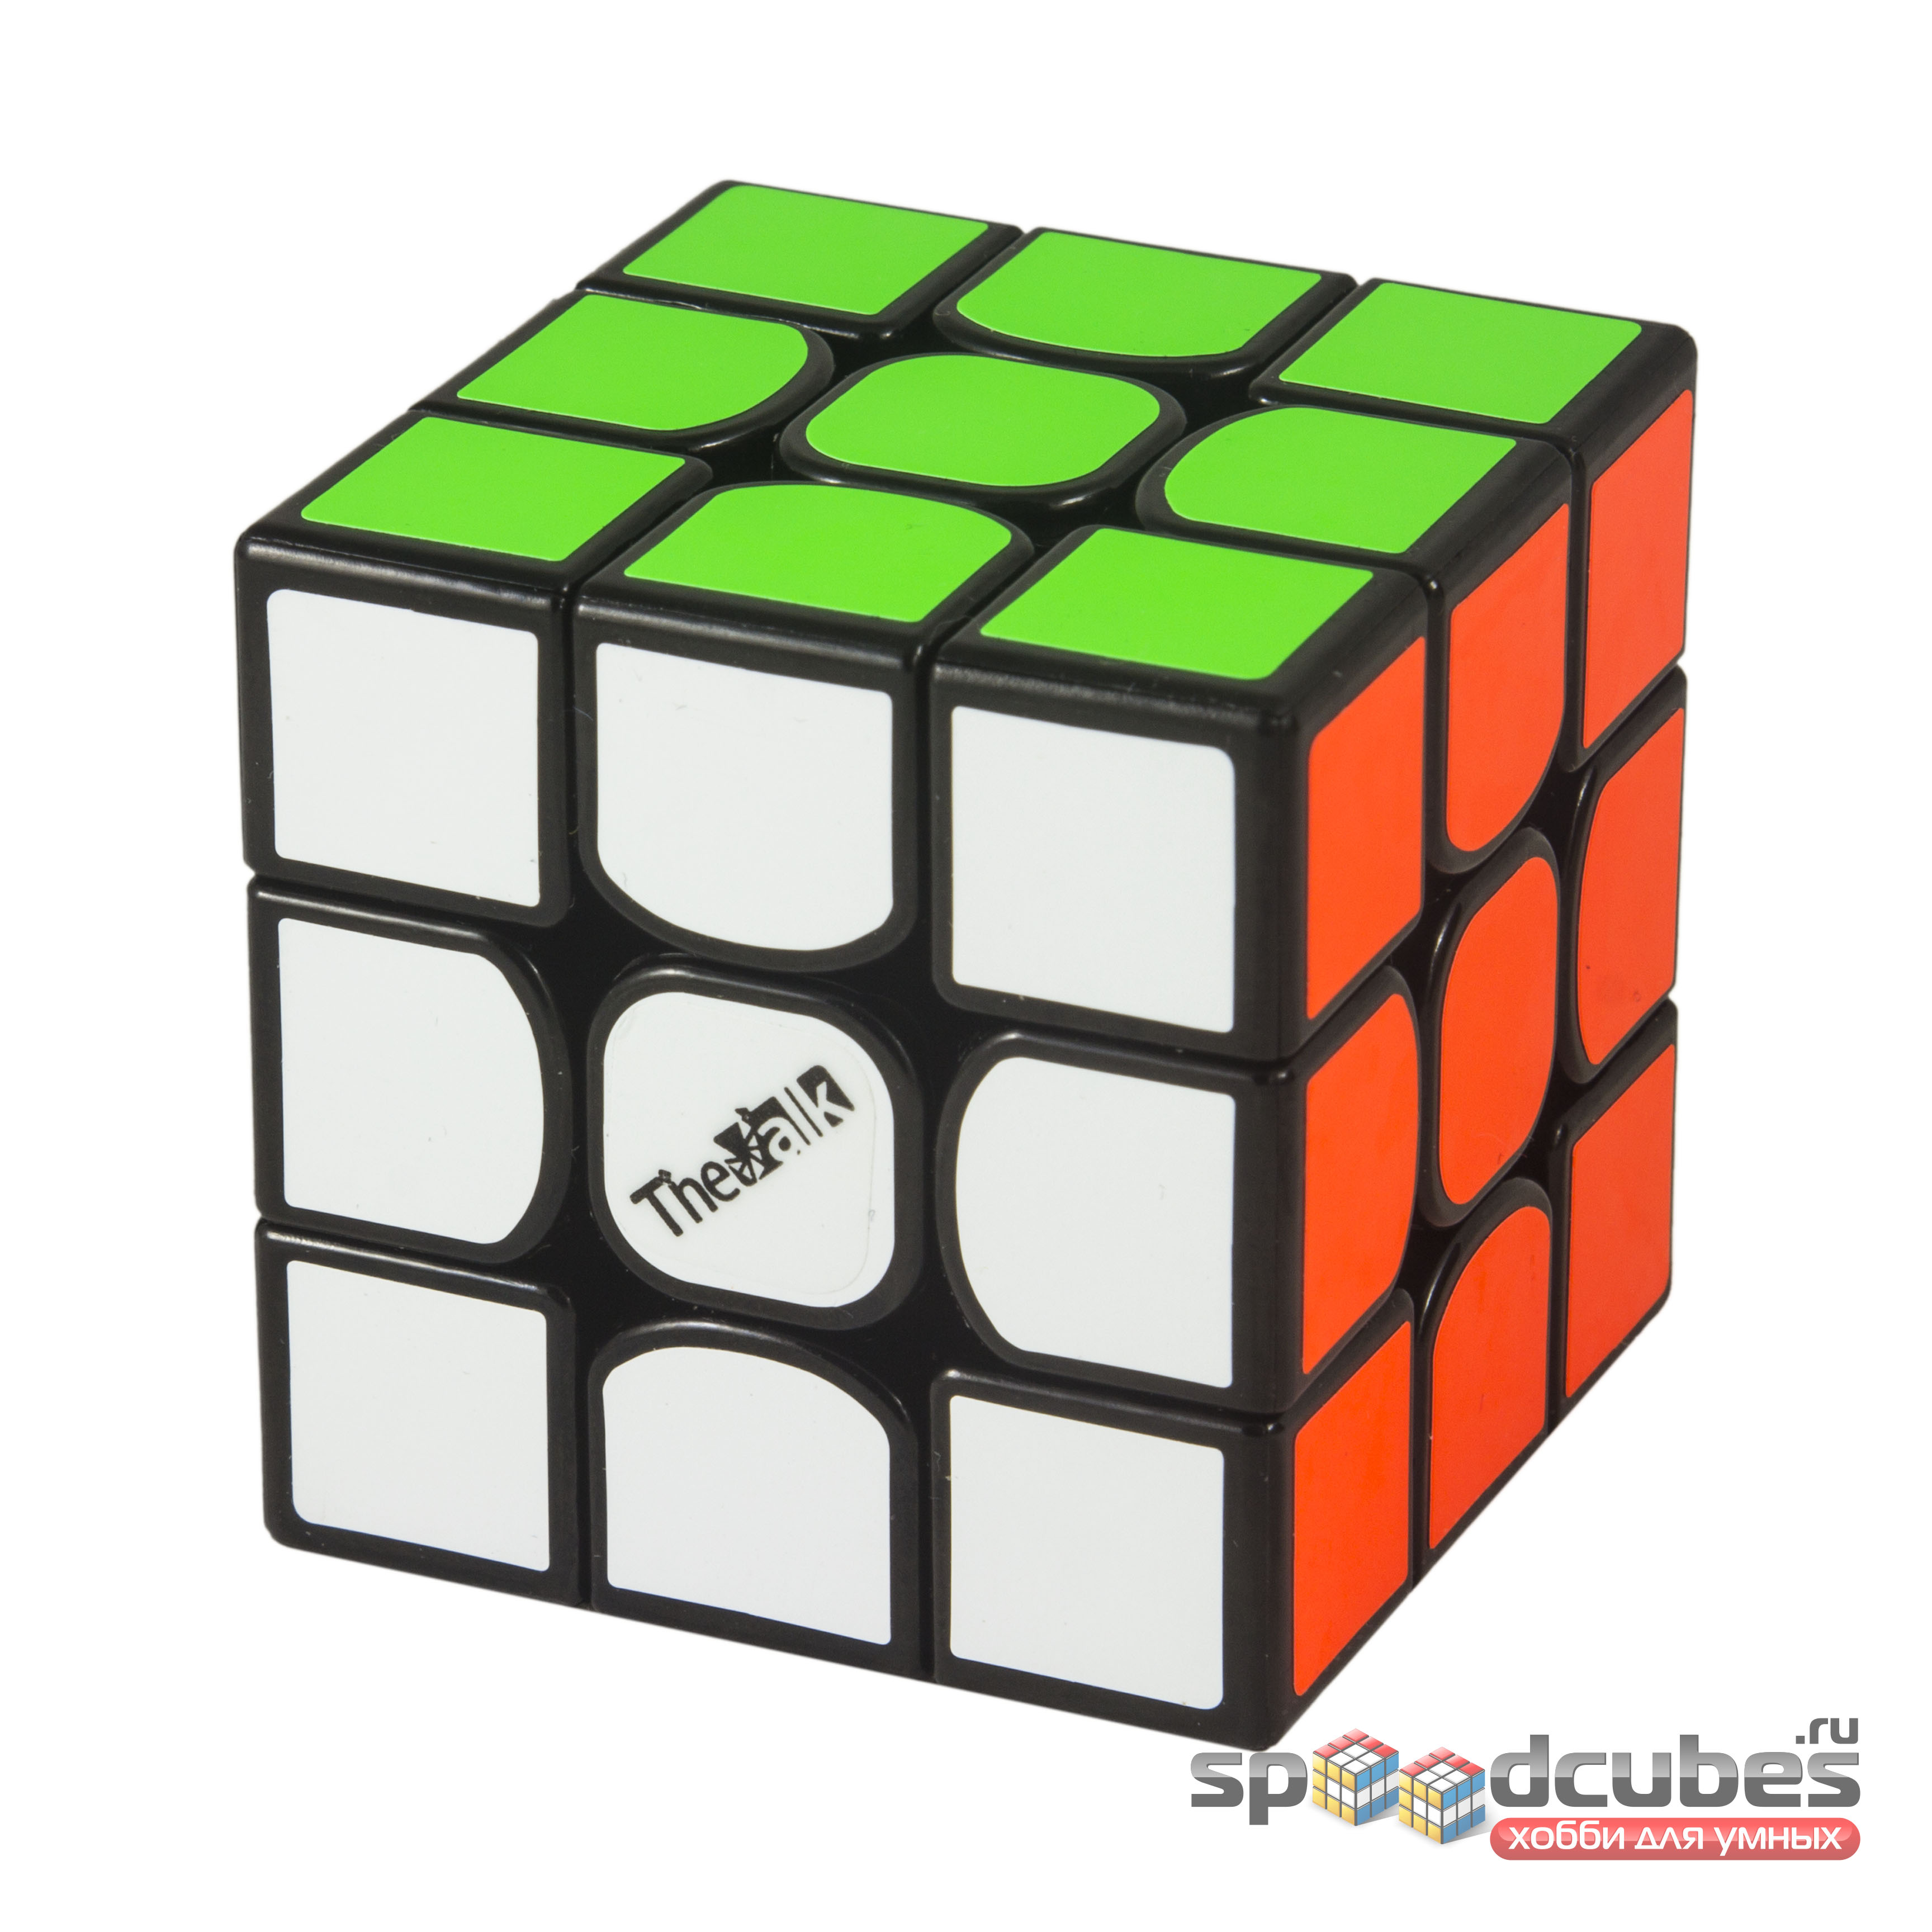 Qiyi Mofangge The Valk 3 Mini Black 3